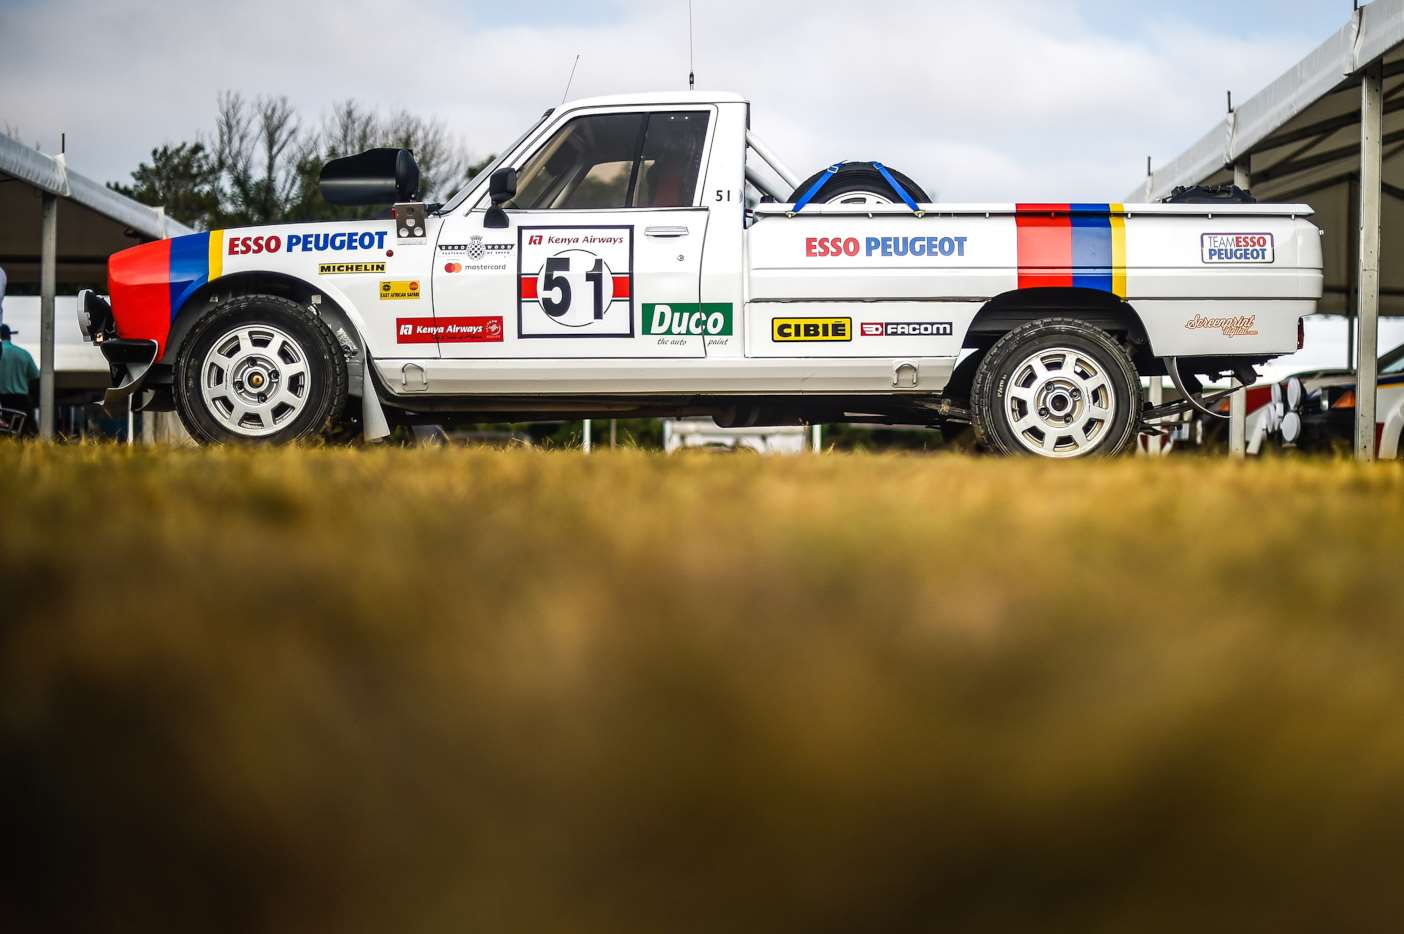 peugeot_504_pickup_fos_goodwood_31071813.jpg